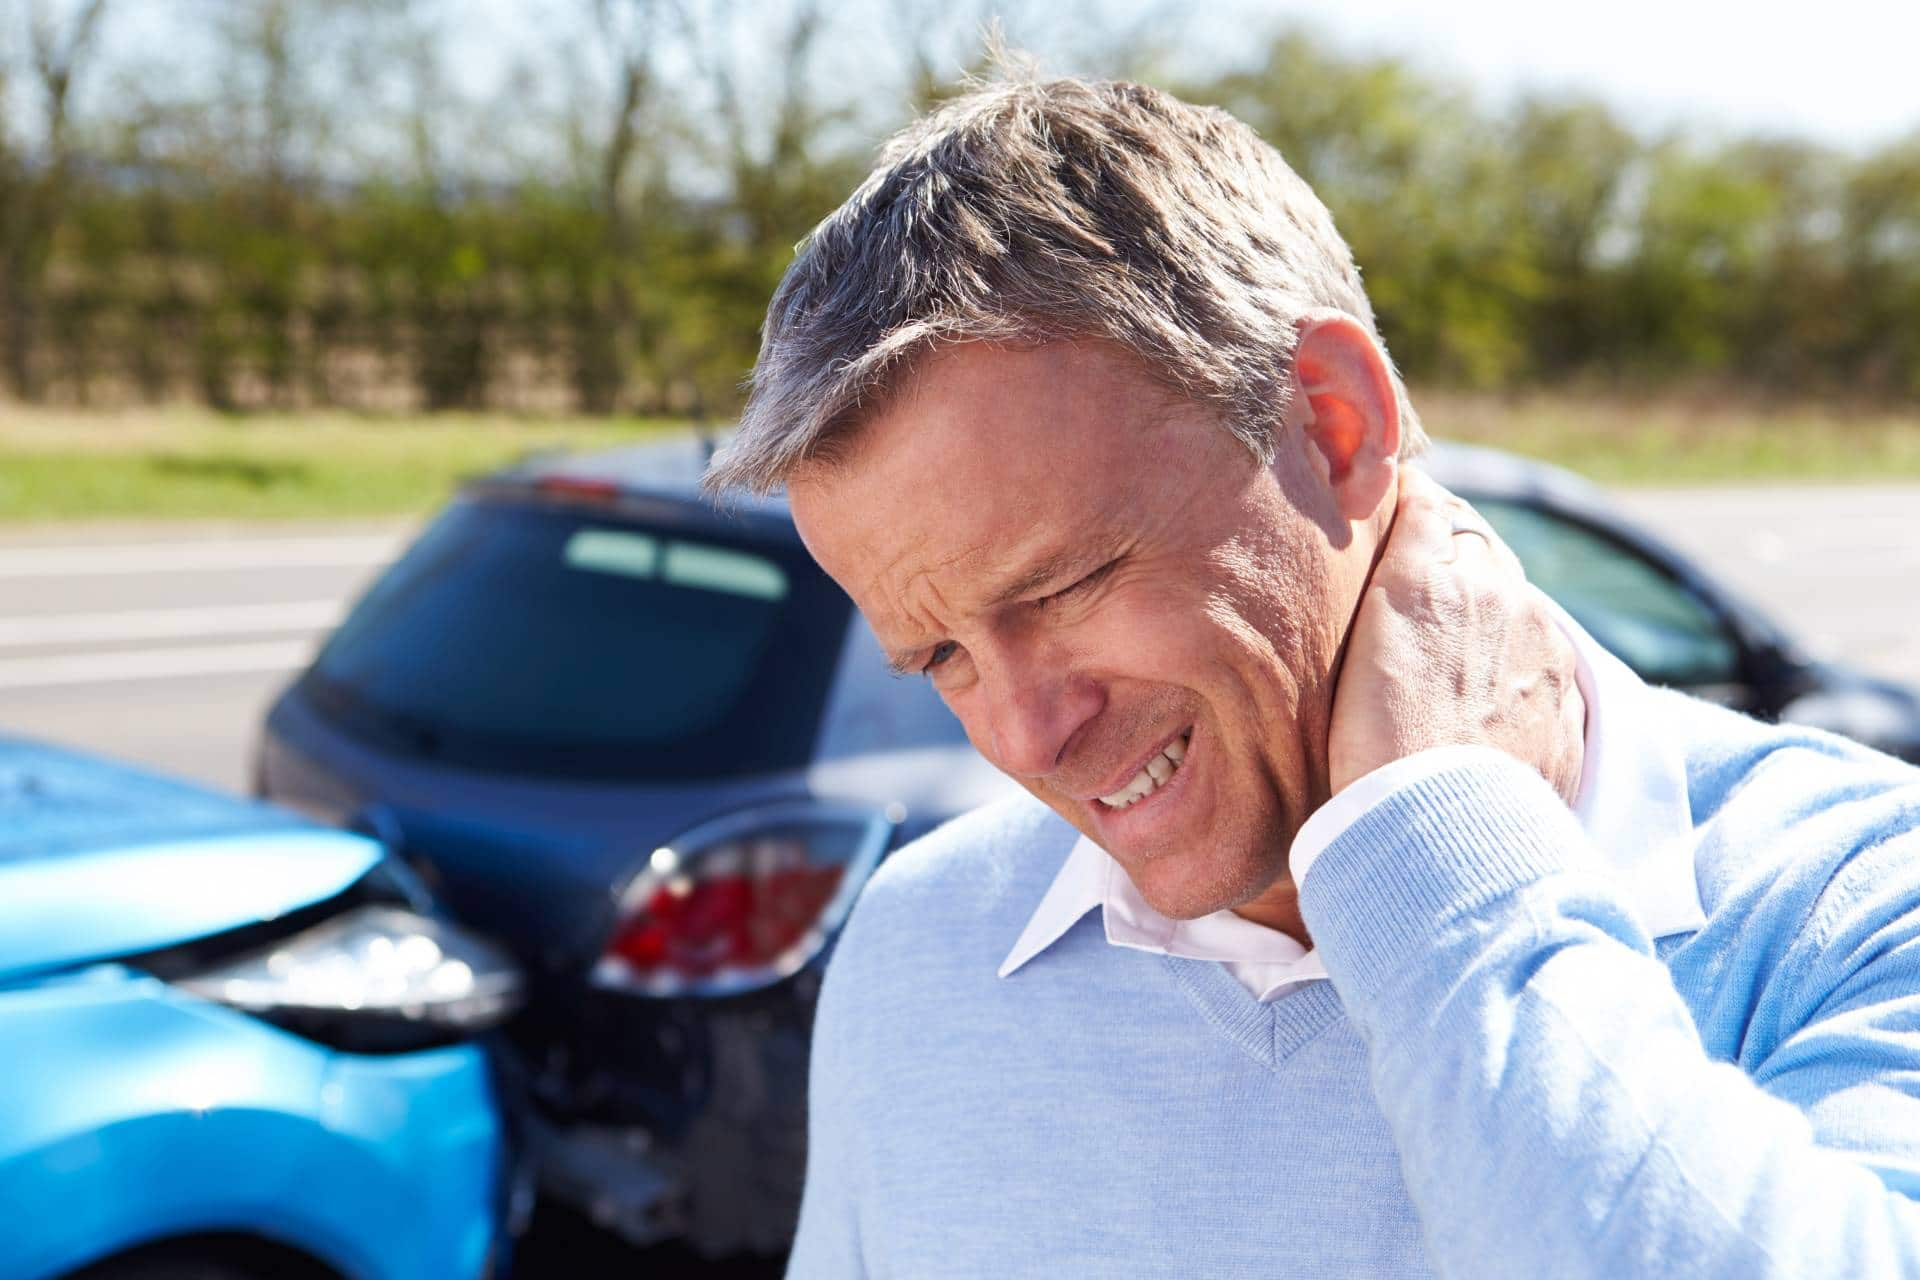 Hurt in an auto accident? Schedule a free consultation with our personal injury lawyers at the Angell Law firm in Morningside-Lenox Park.